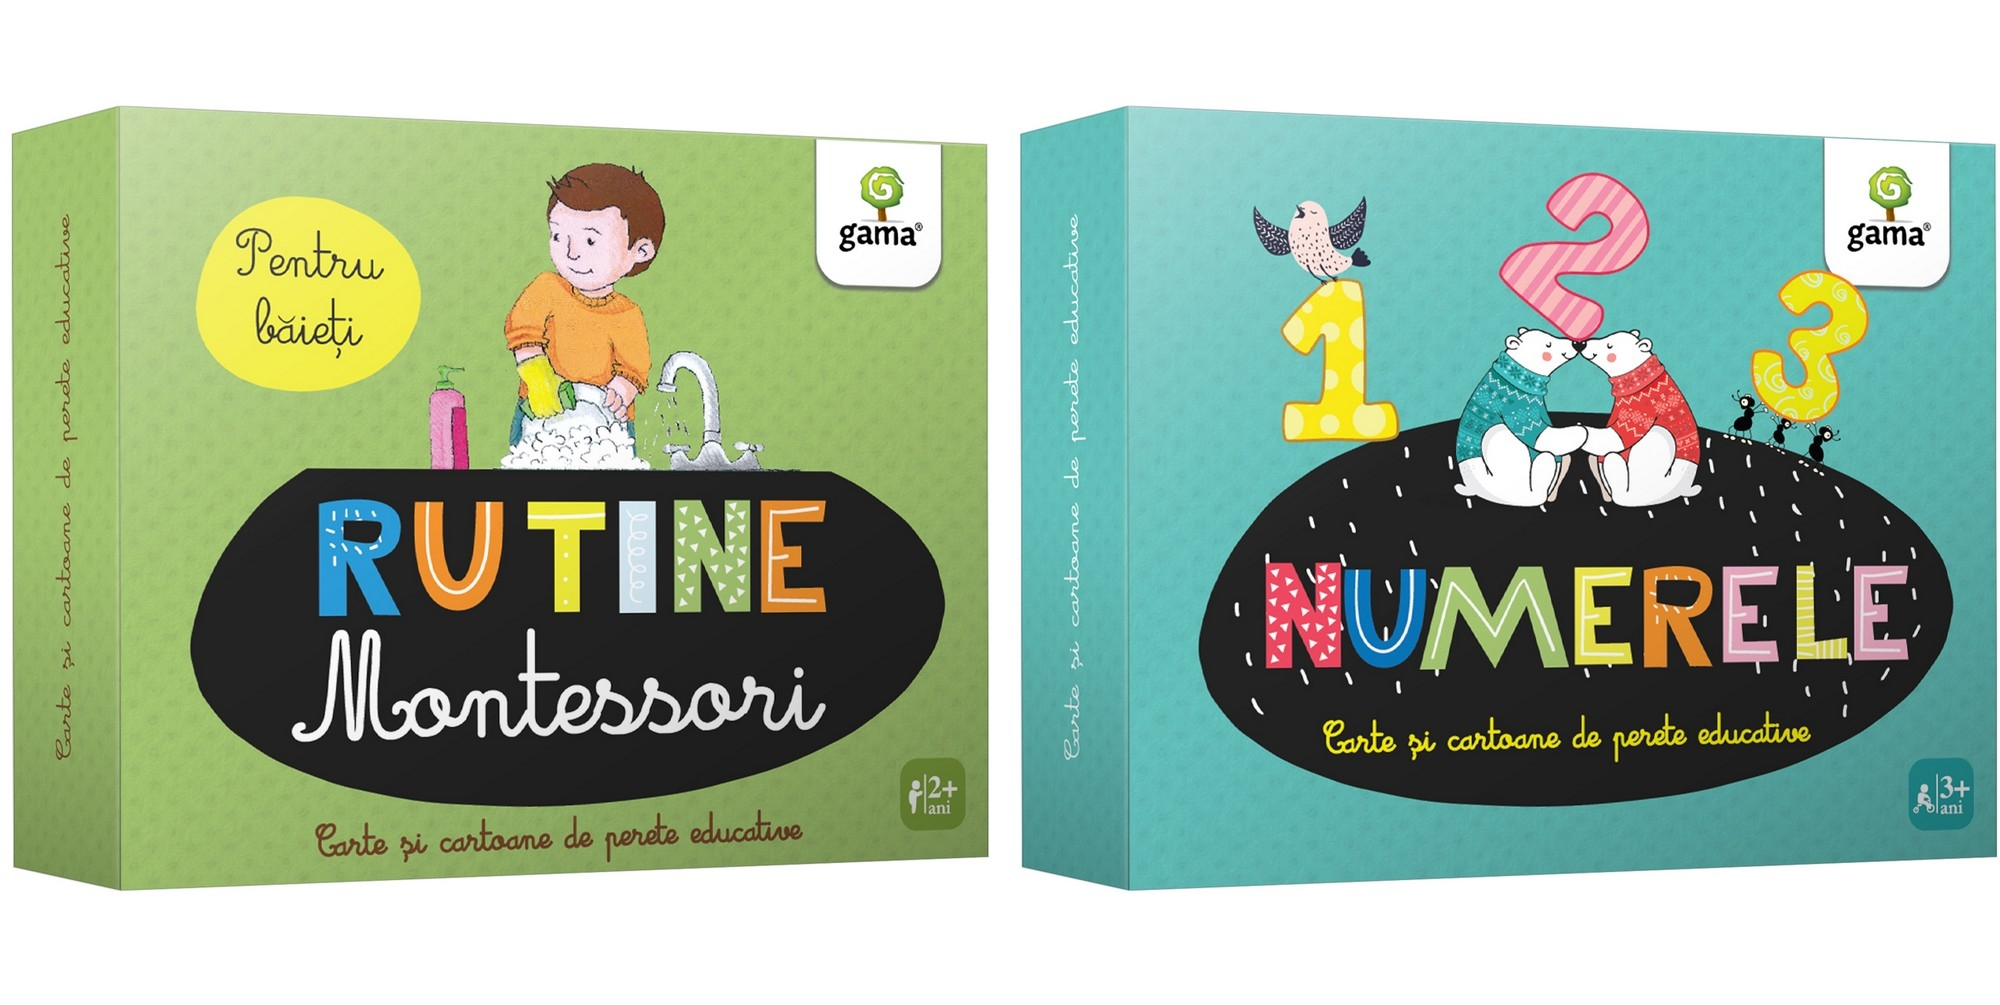 Cartoane de perete educative